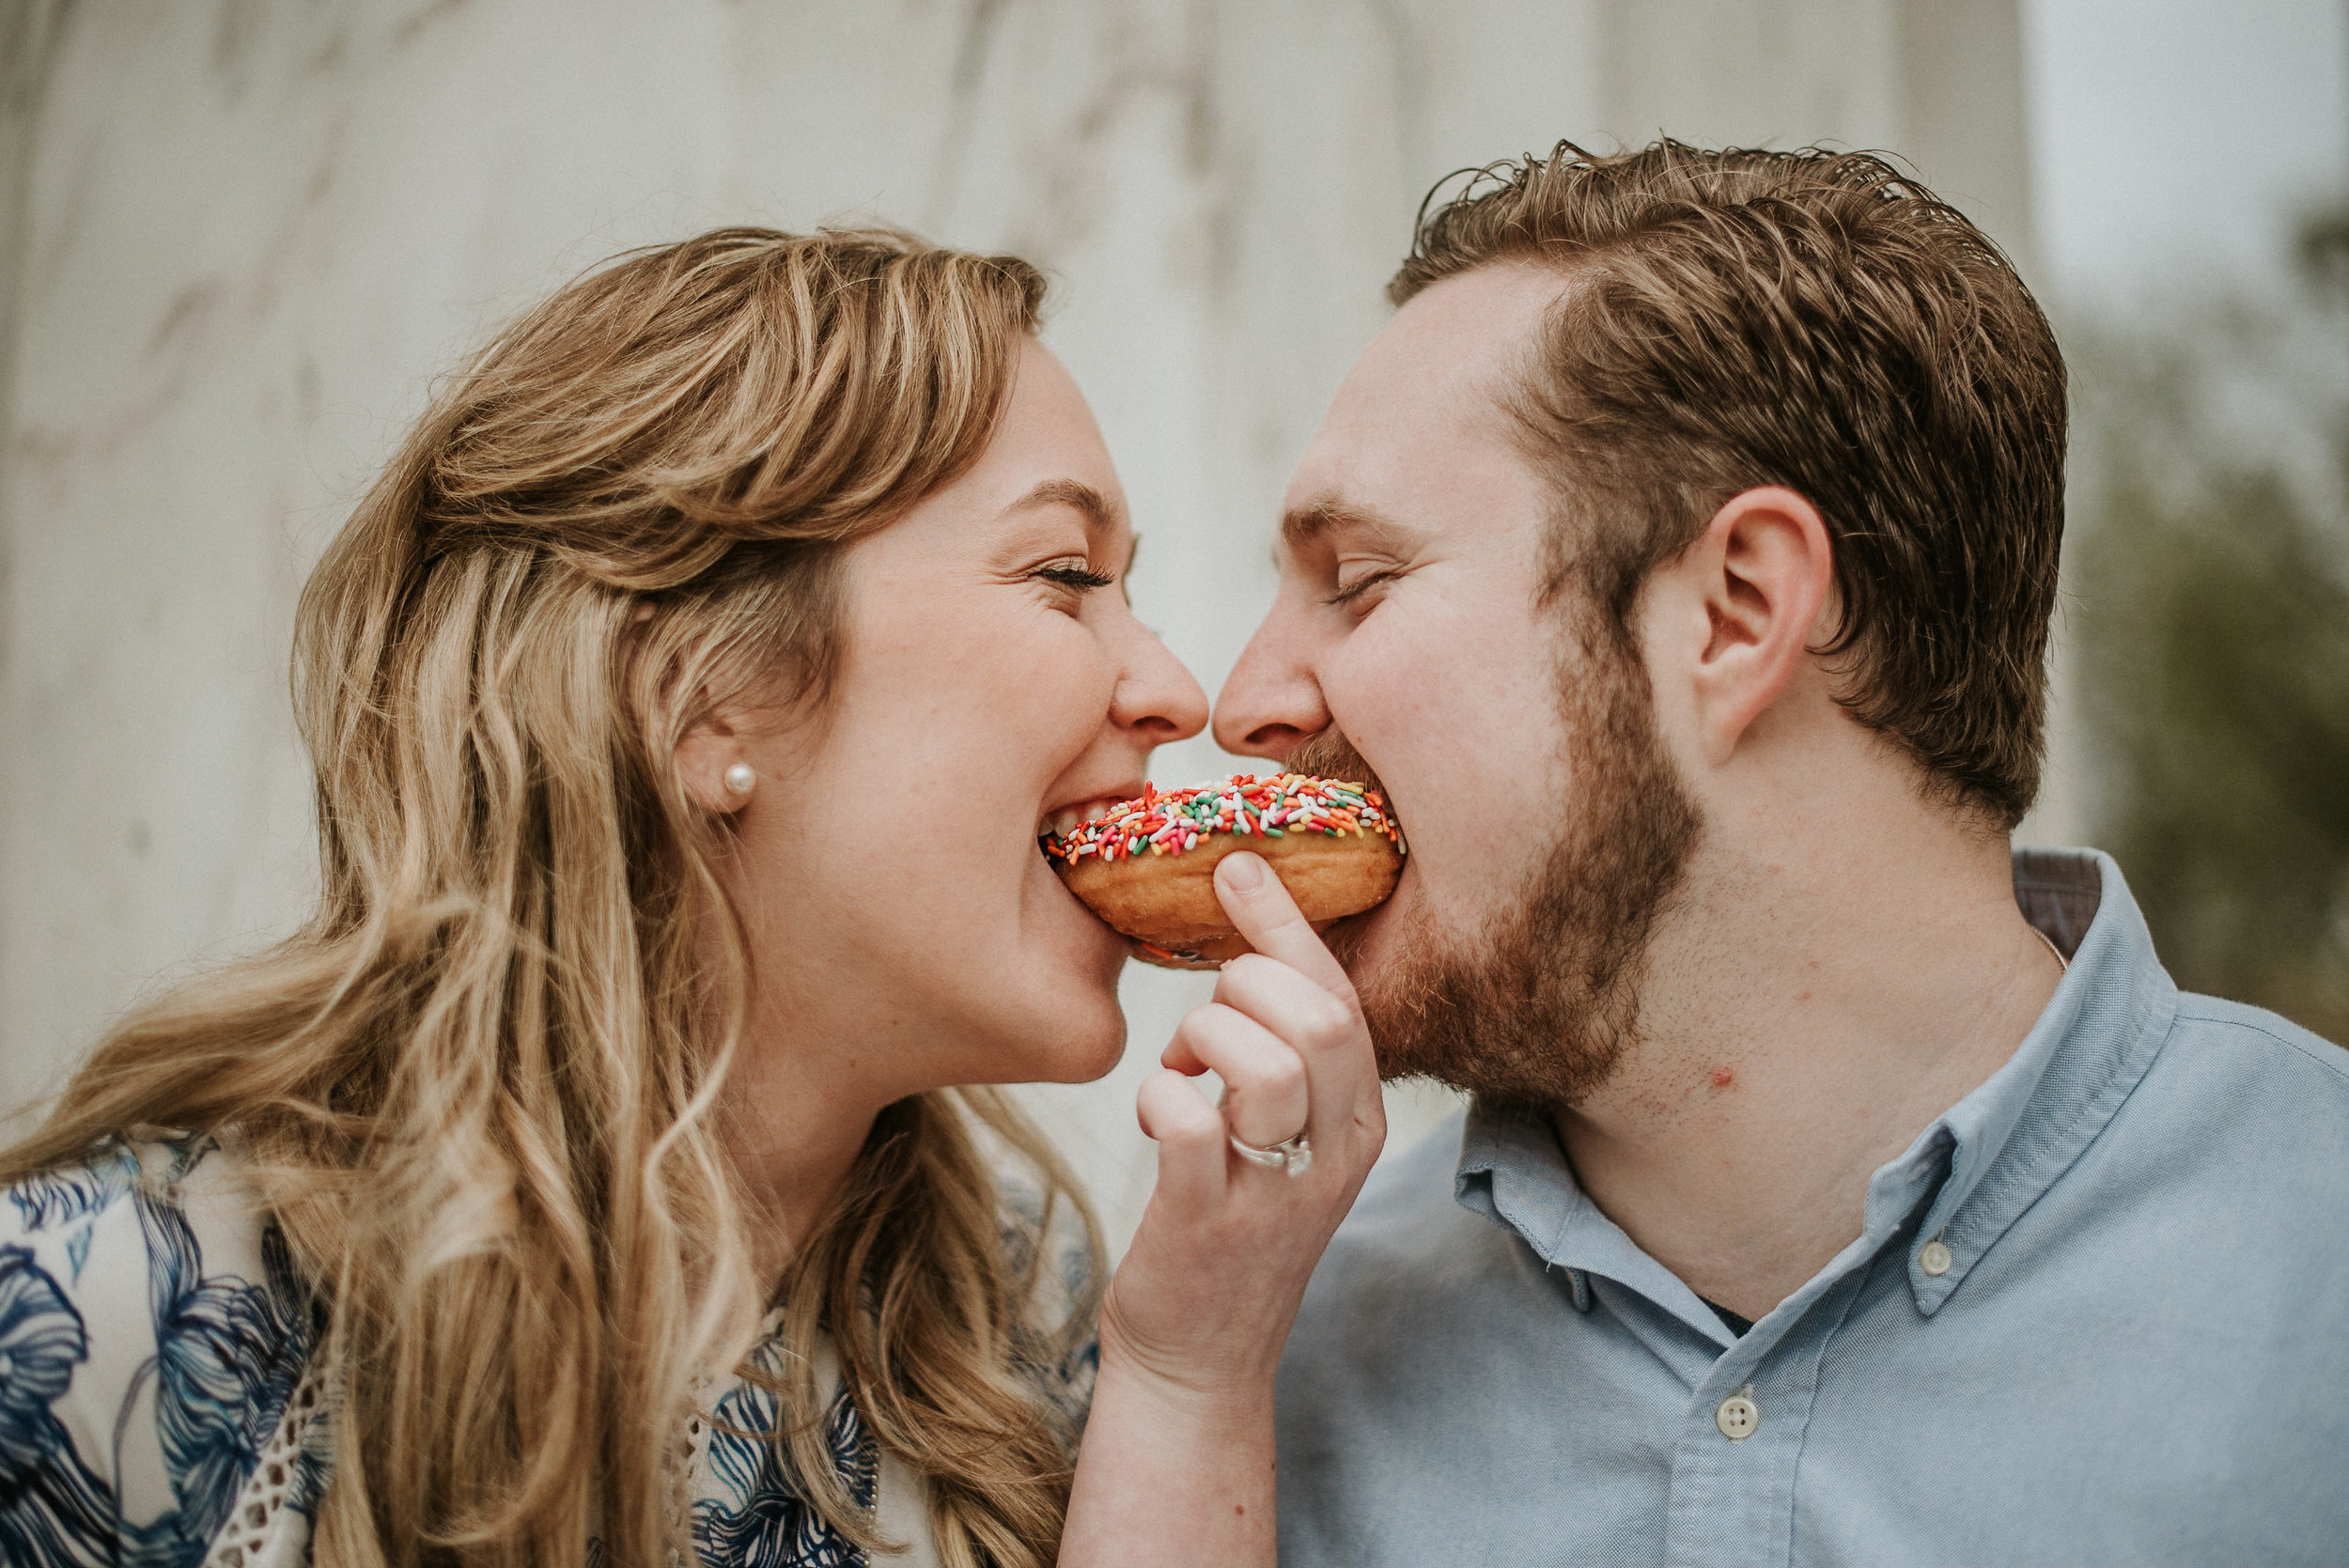 Couple taking a bite from donut